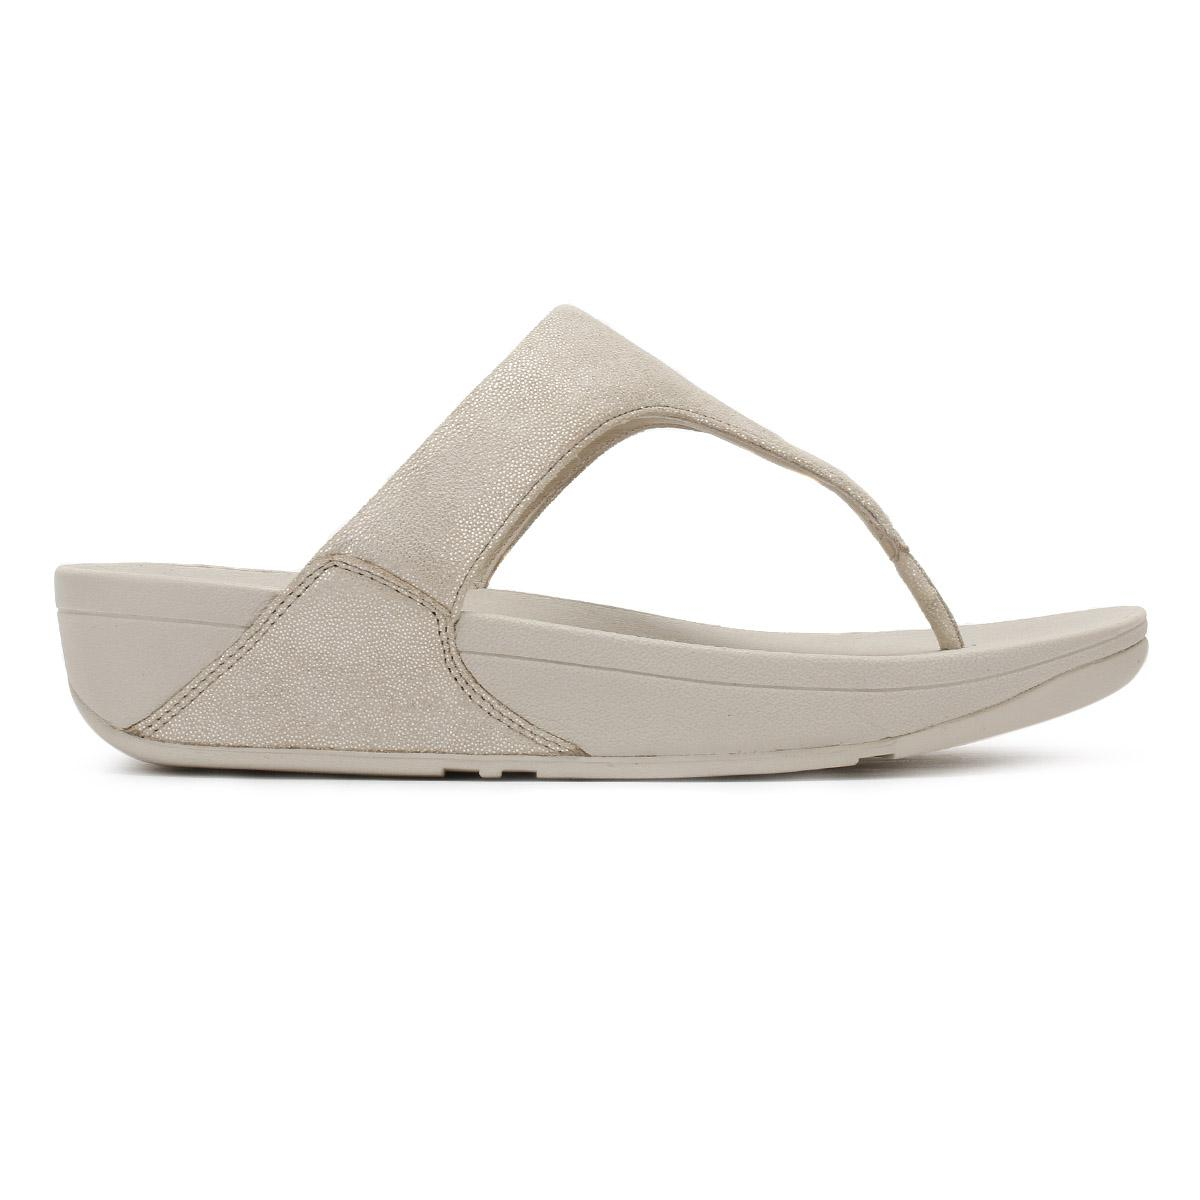 381cb3c23492 Lyst - Fitflop Womens Pale Gold Shimmy Suede Toe Post Sandal in Metallic